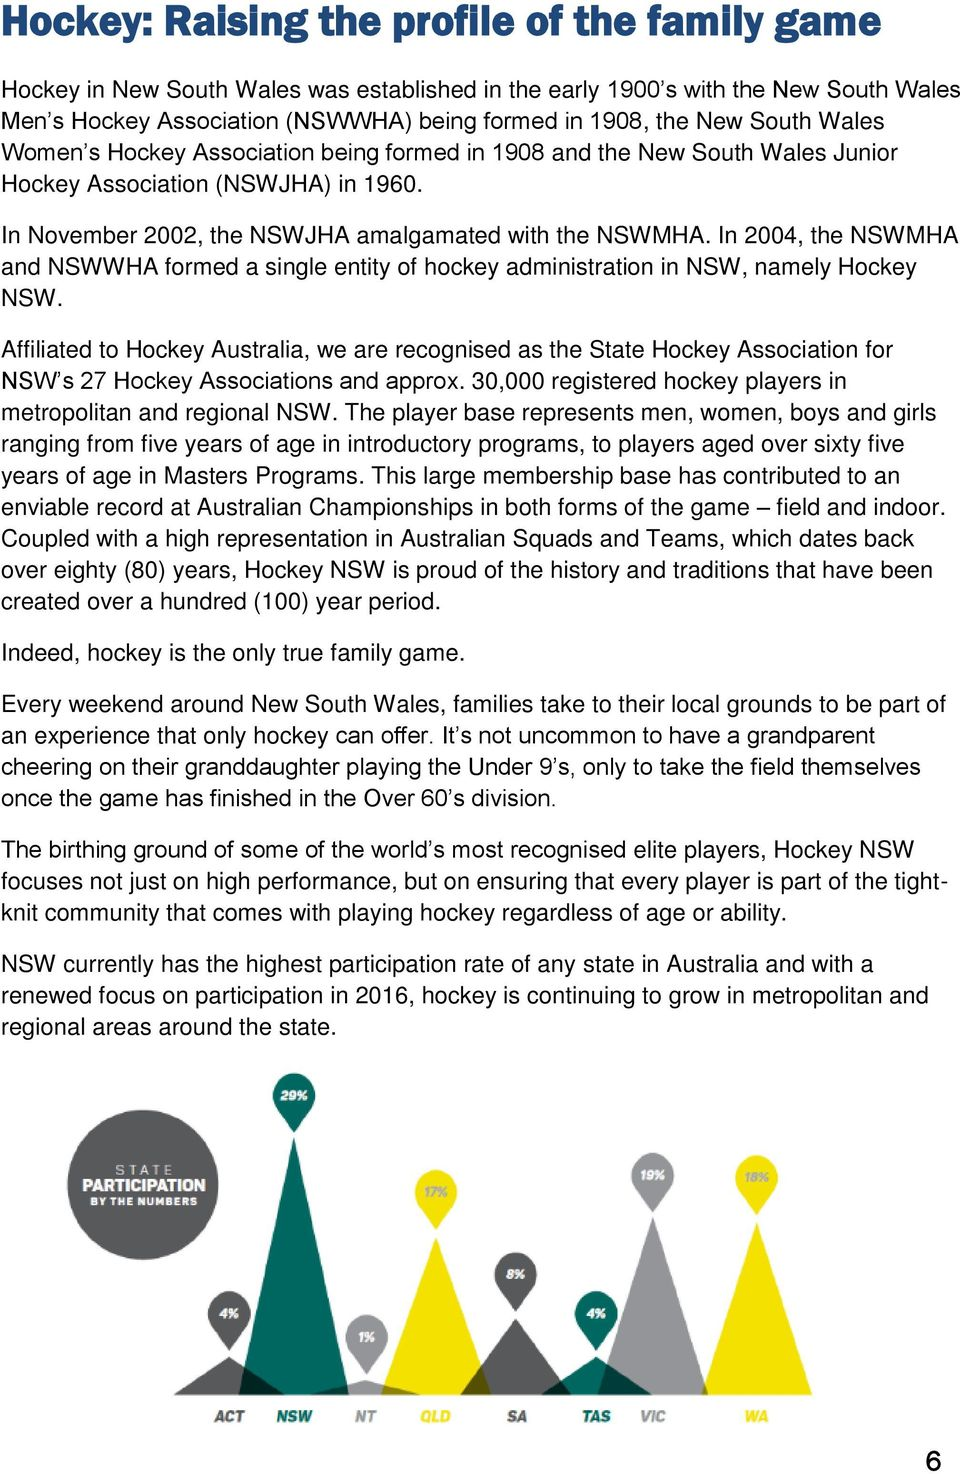 In 2004, the NSWMHA and NSWWHA formed a single entity of hockey administration in NSW, namely Hockey NSW.